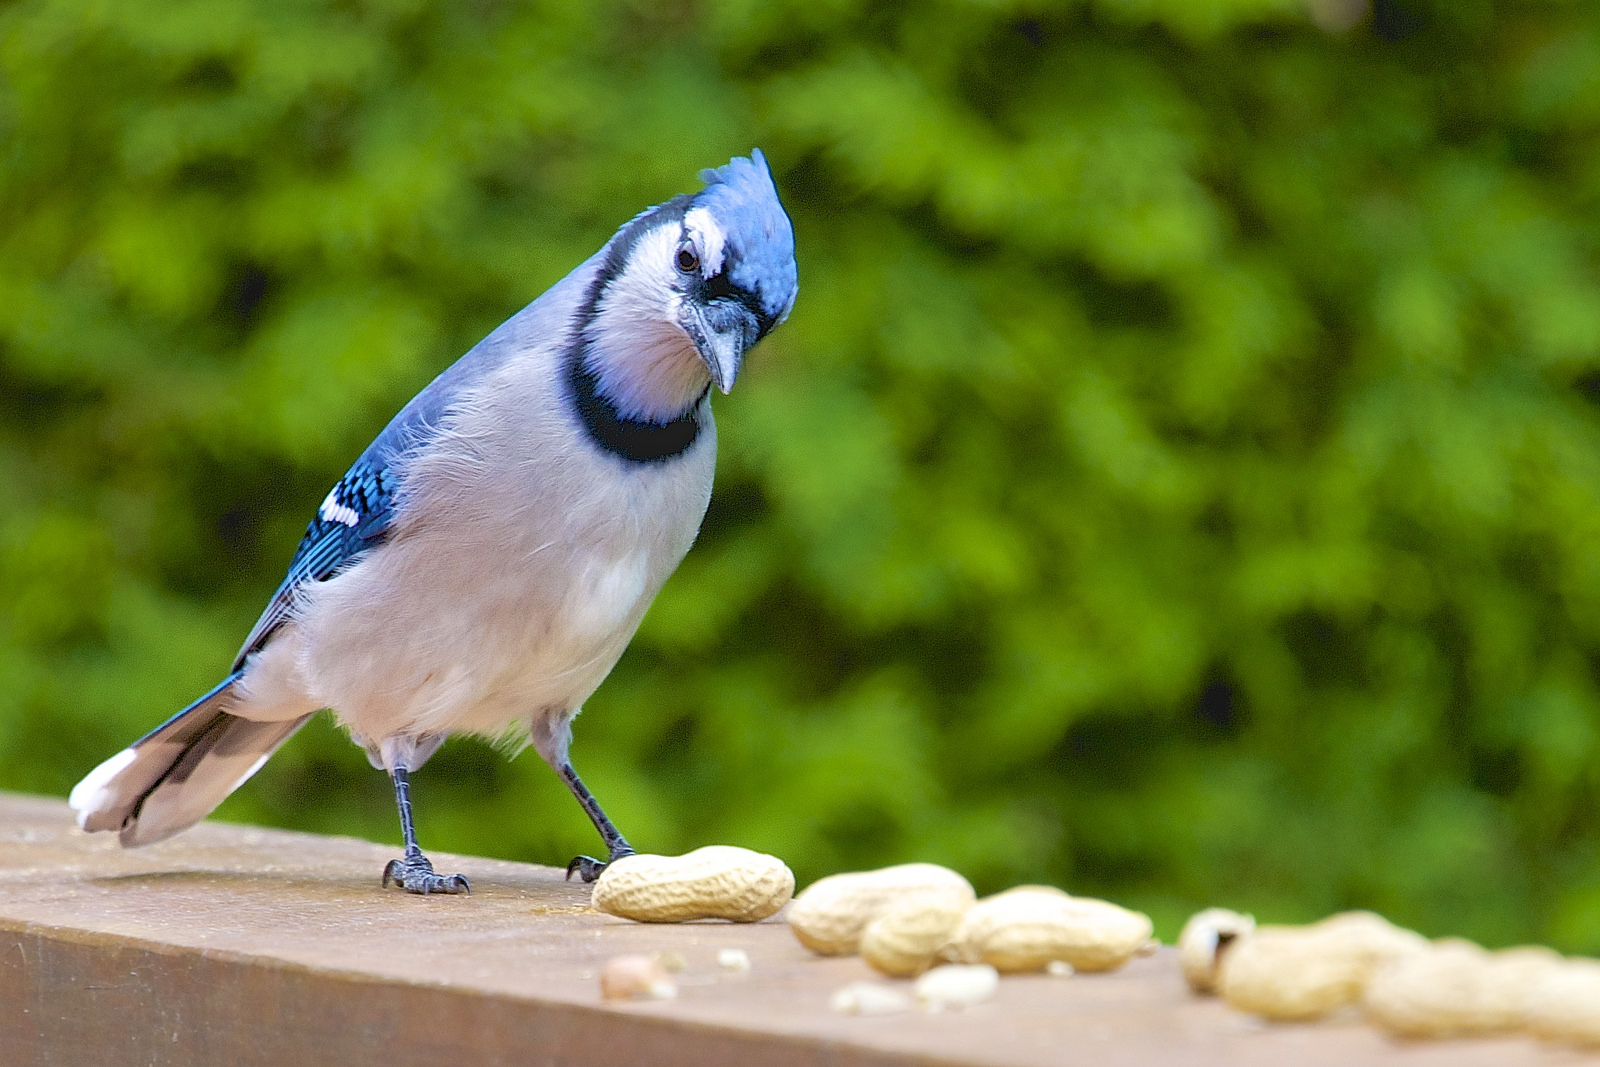 Blue jays and other birds love peanuts! Photo by Jamie McCaffrey